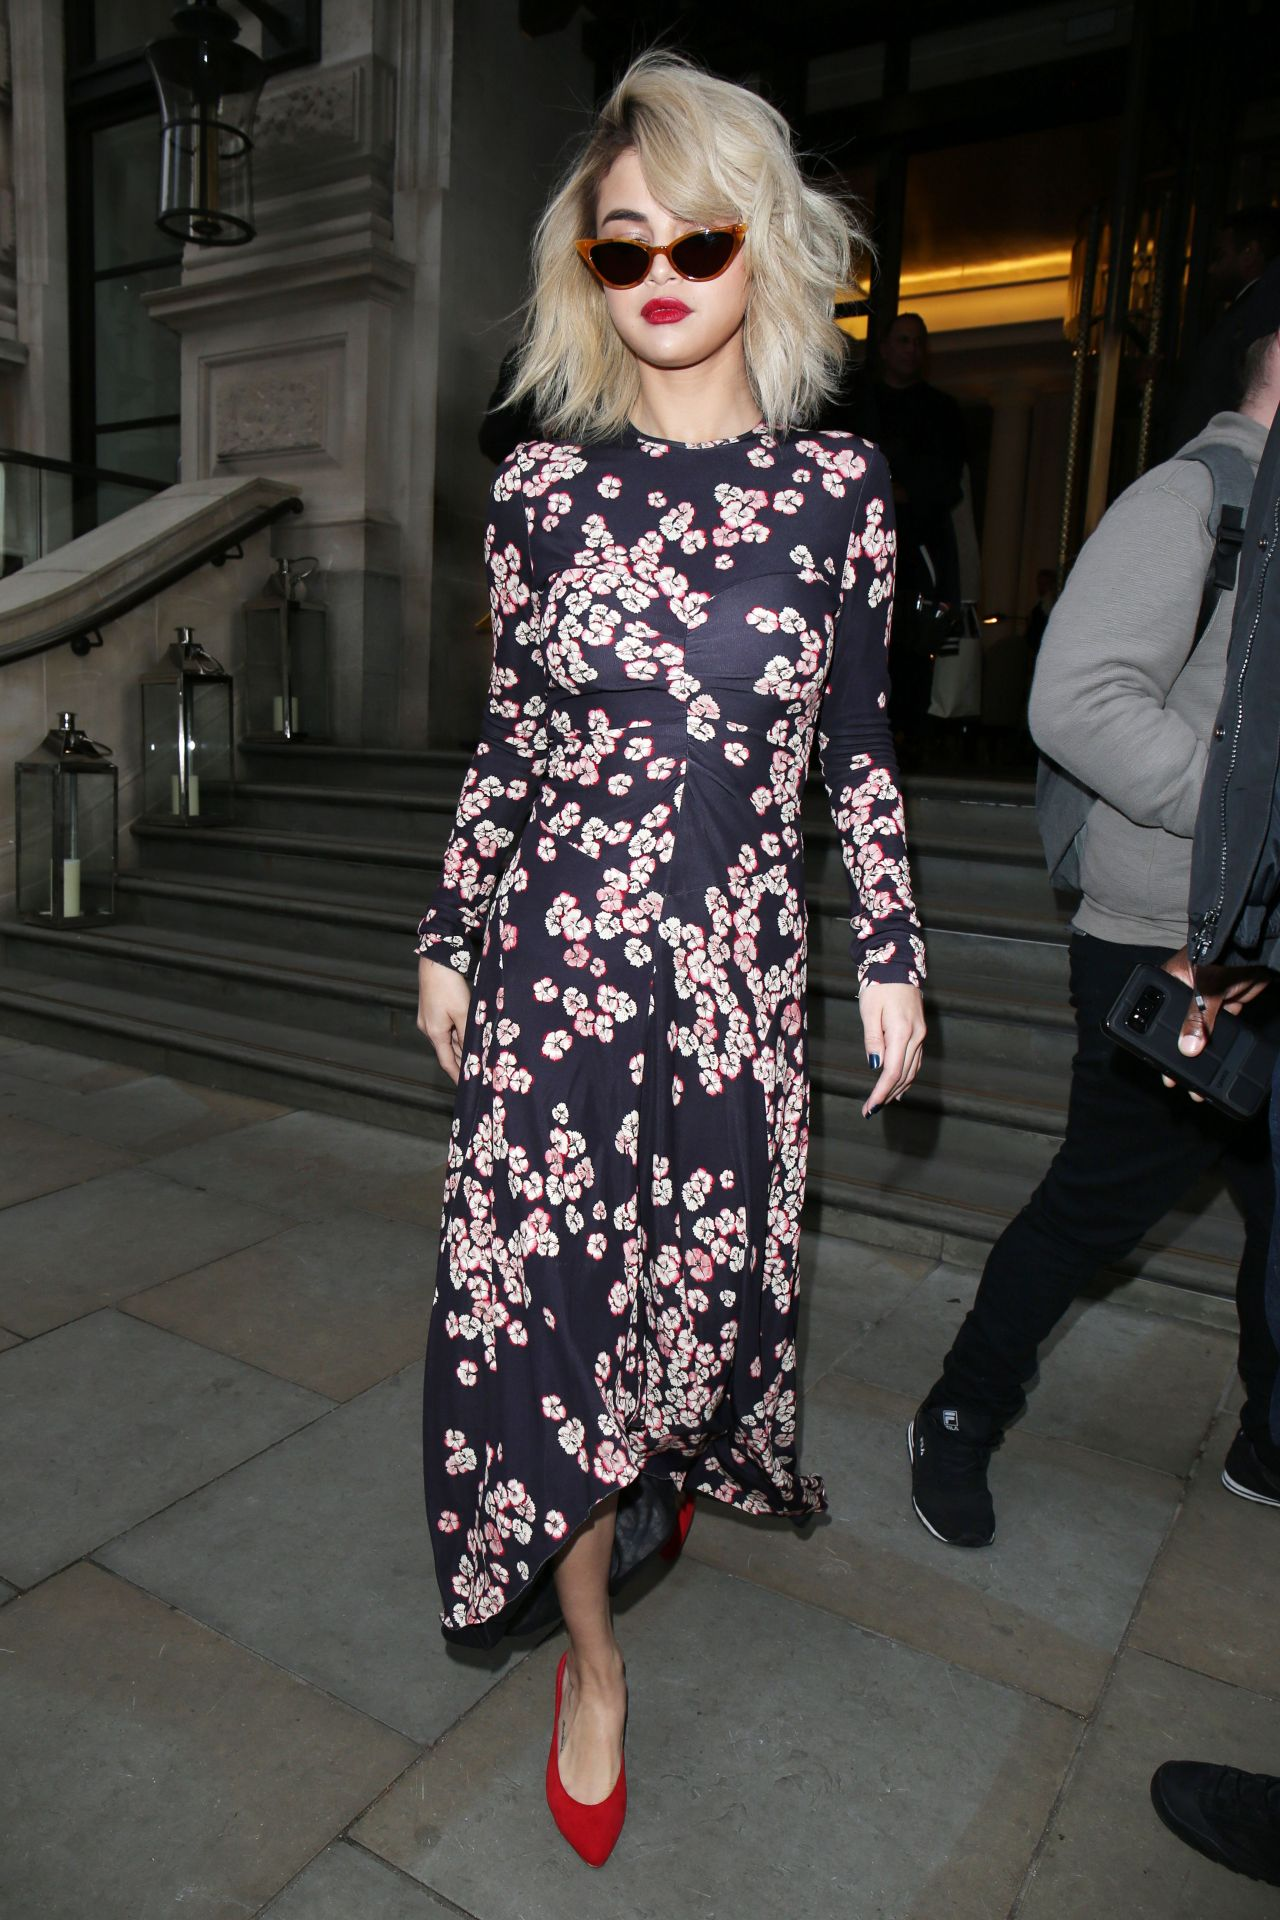 Selena Gomez Goes To Coach Store In London